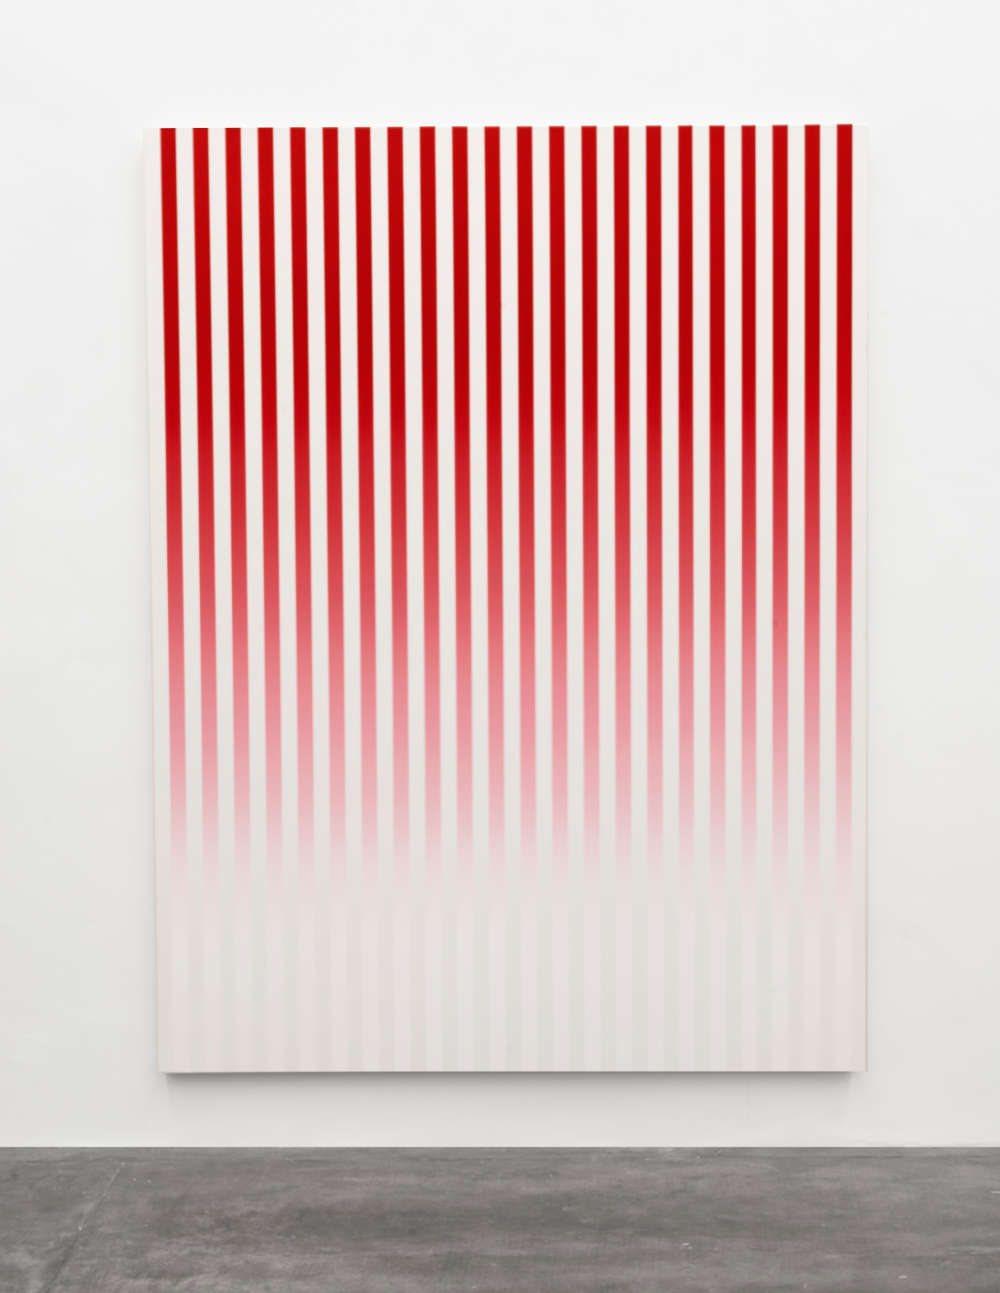 Philippe Decrauzat, Slow Motion Red # 1, 2019. Acrylic paint on canvas 200 x 150 x 4,5 cm/78.7 x 59.1 x 1.8 in. Photo © Nei Toledo. Courtesy of the artist and Galeria Nara Roesler